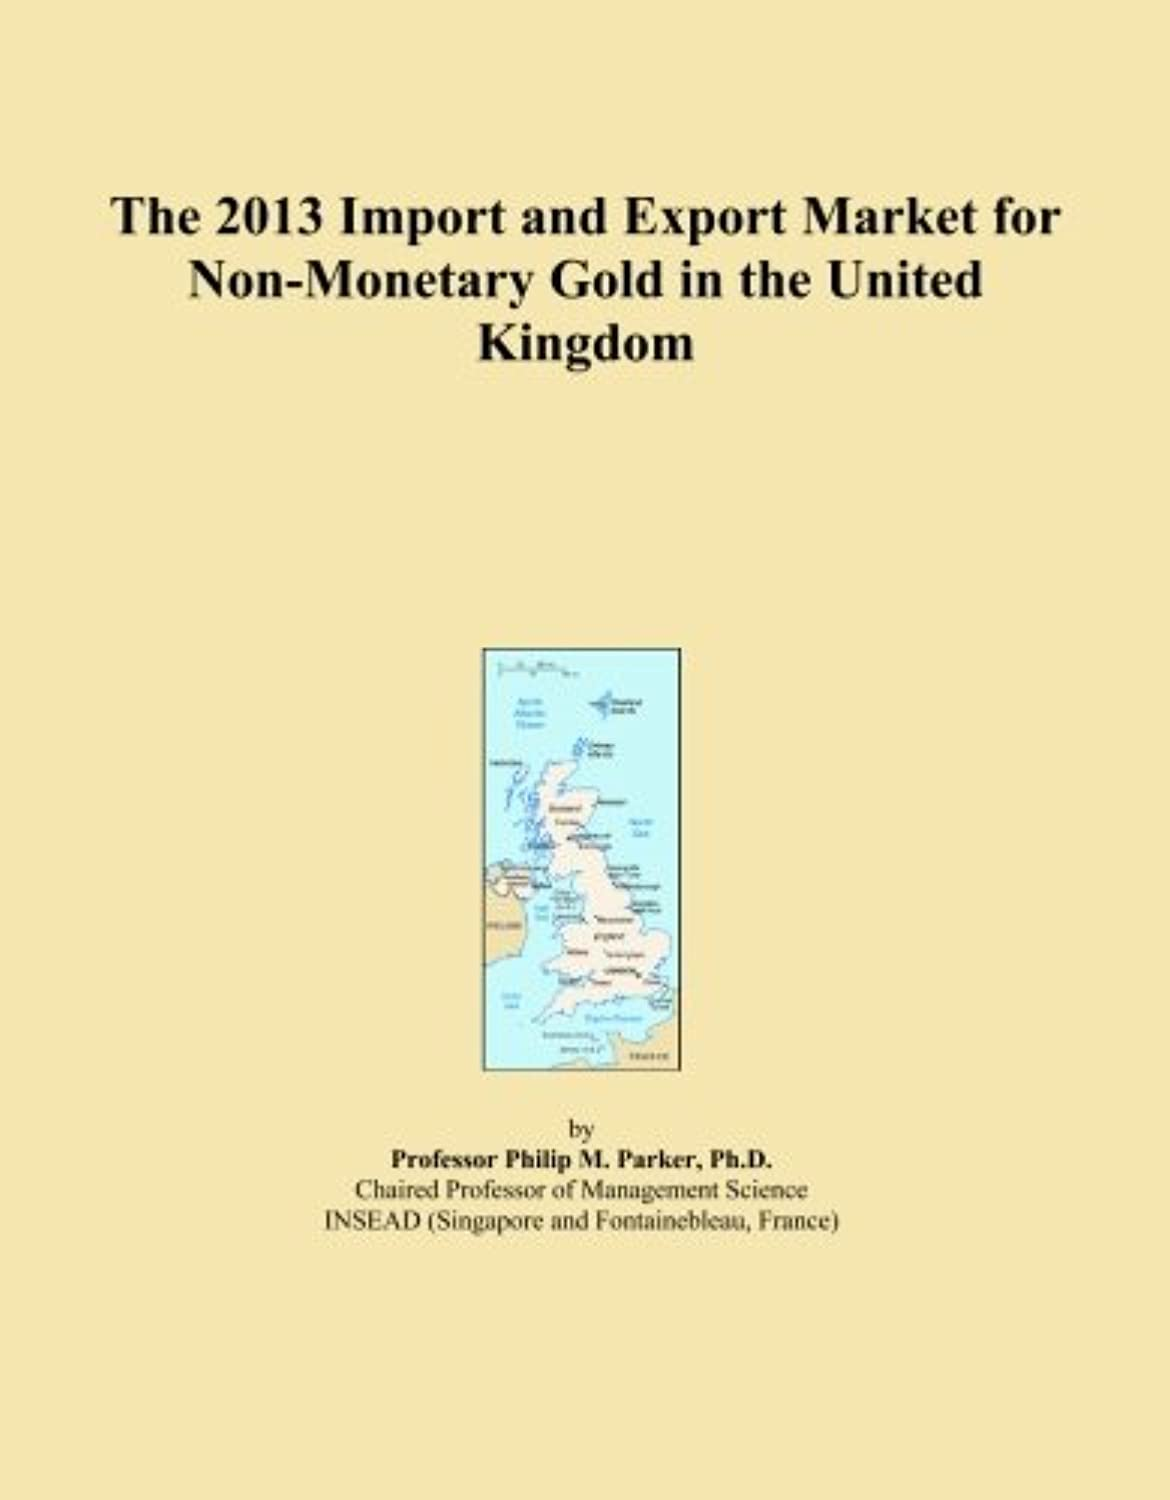 The 2013 Import and Export Market for Non-Monetary Gold in the United Kingdom